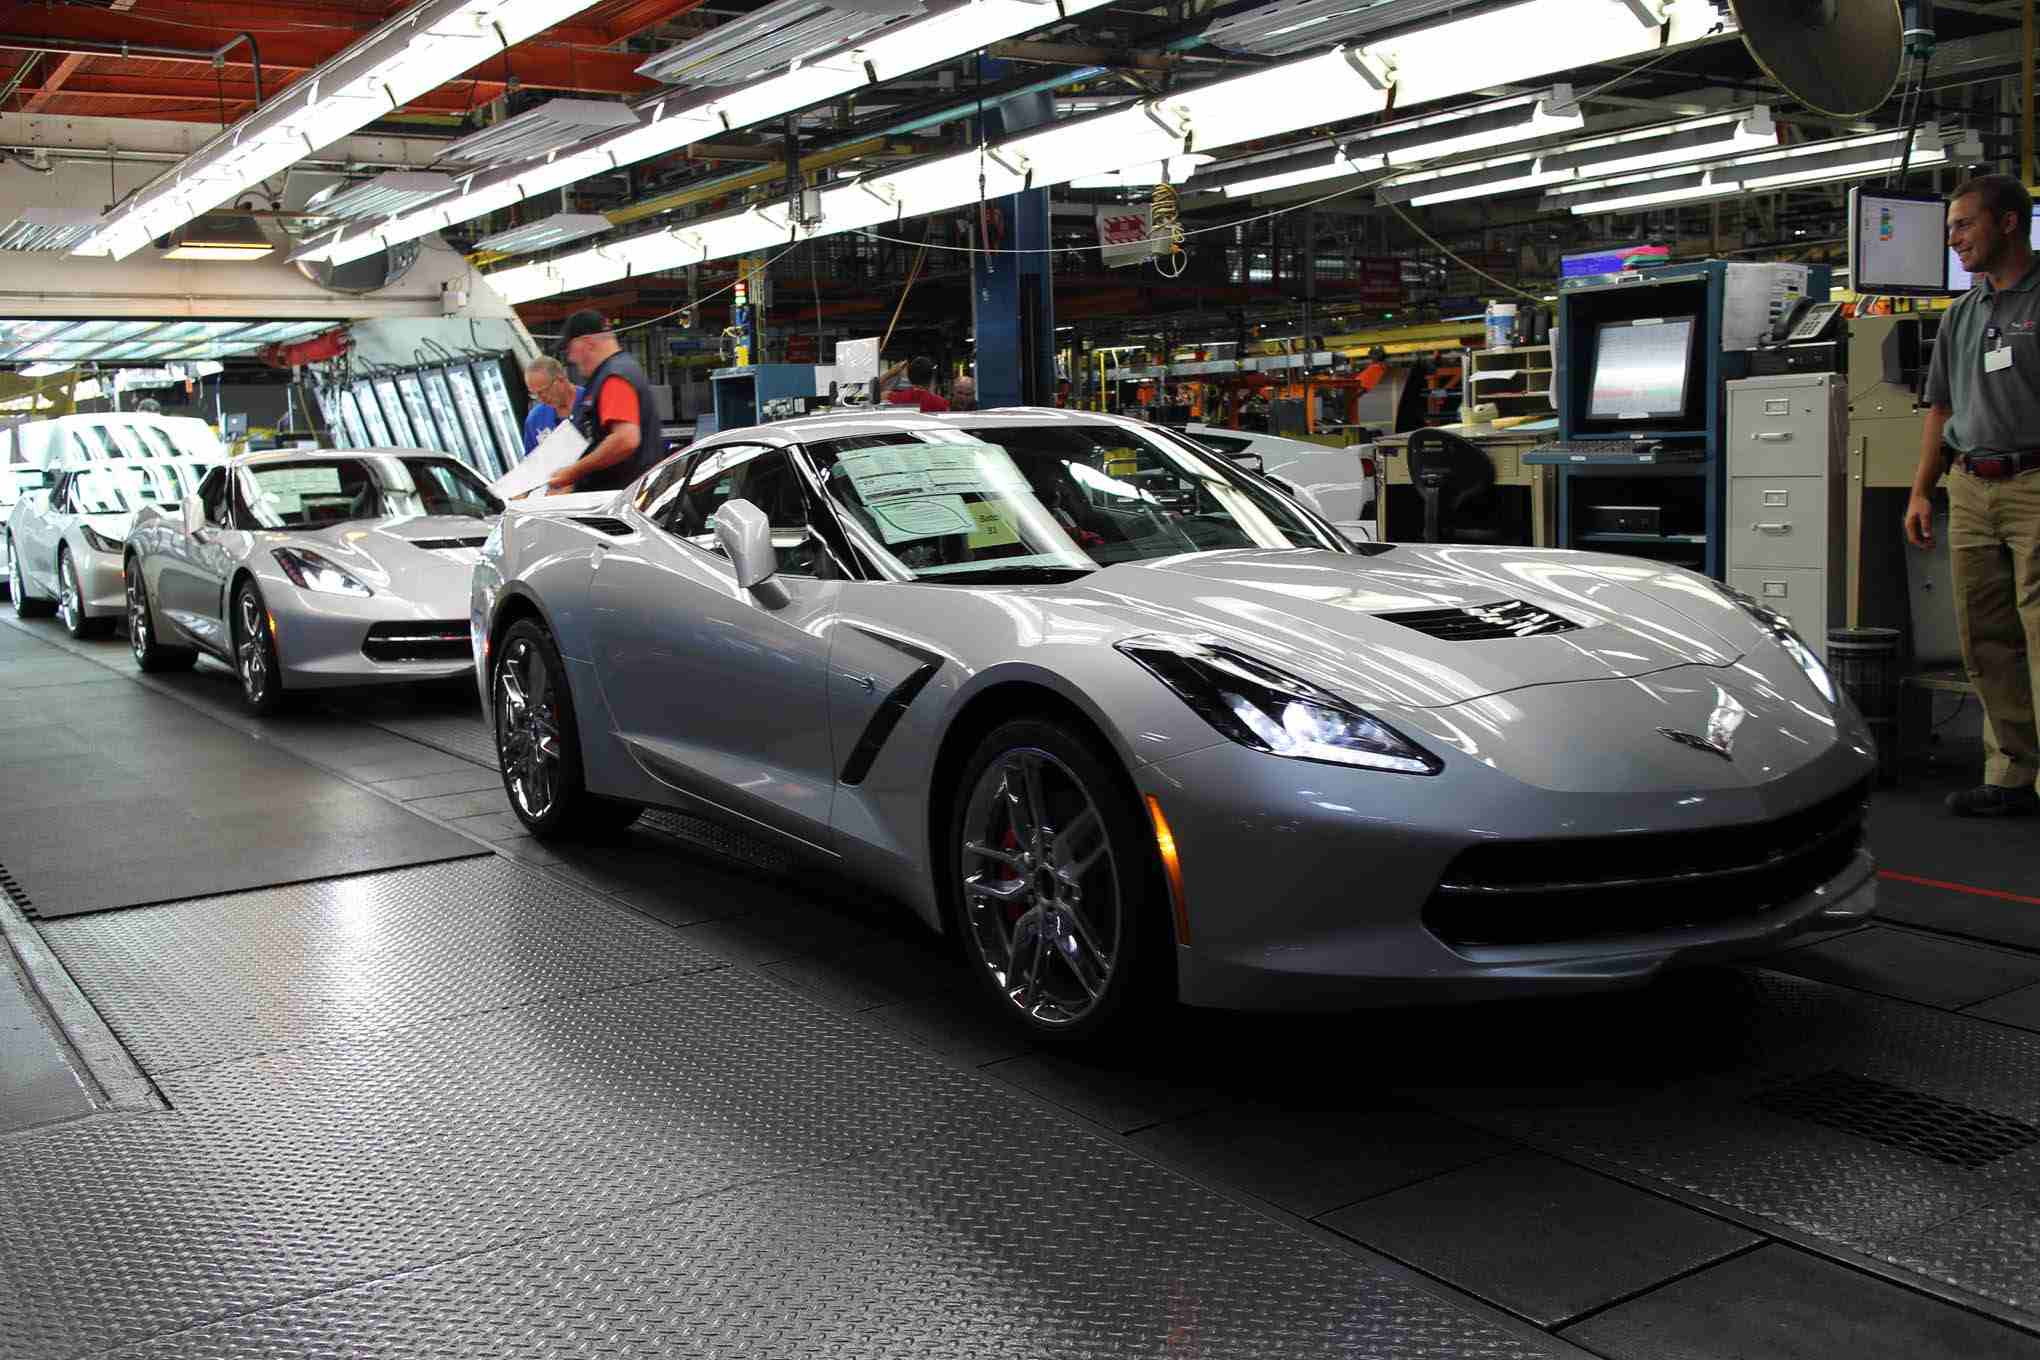 2014-chevrolet-corvette-stingray-factory-assembly-line-03